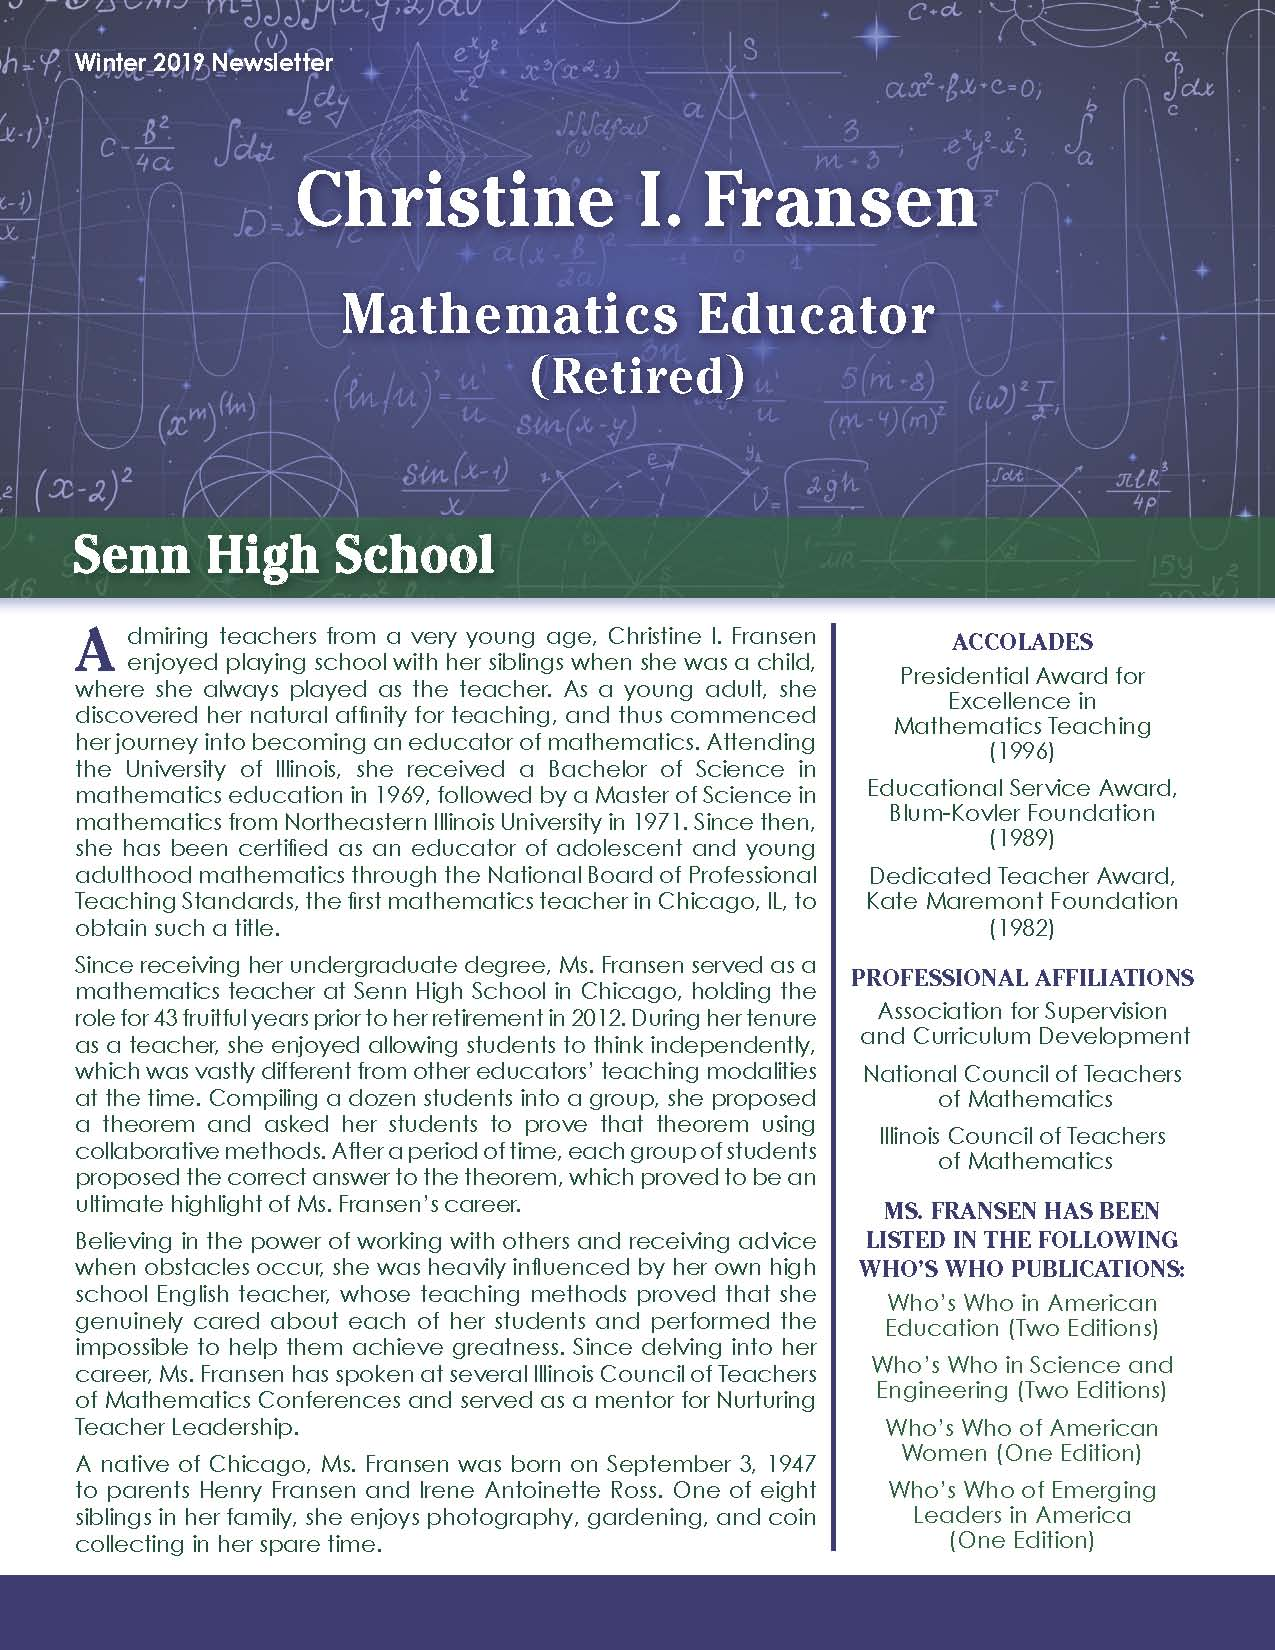 Fransen, Christine 4117811_17510661 Newsletter.jpg